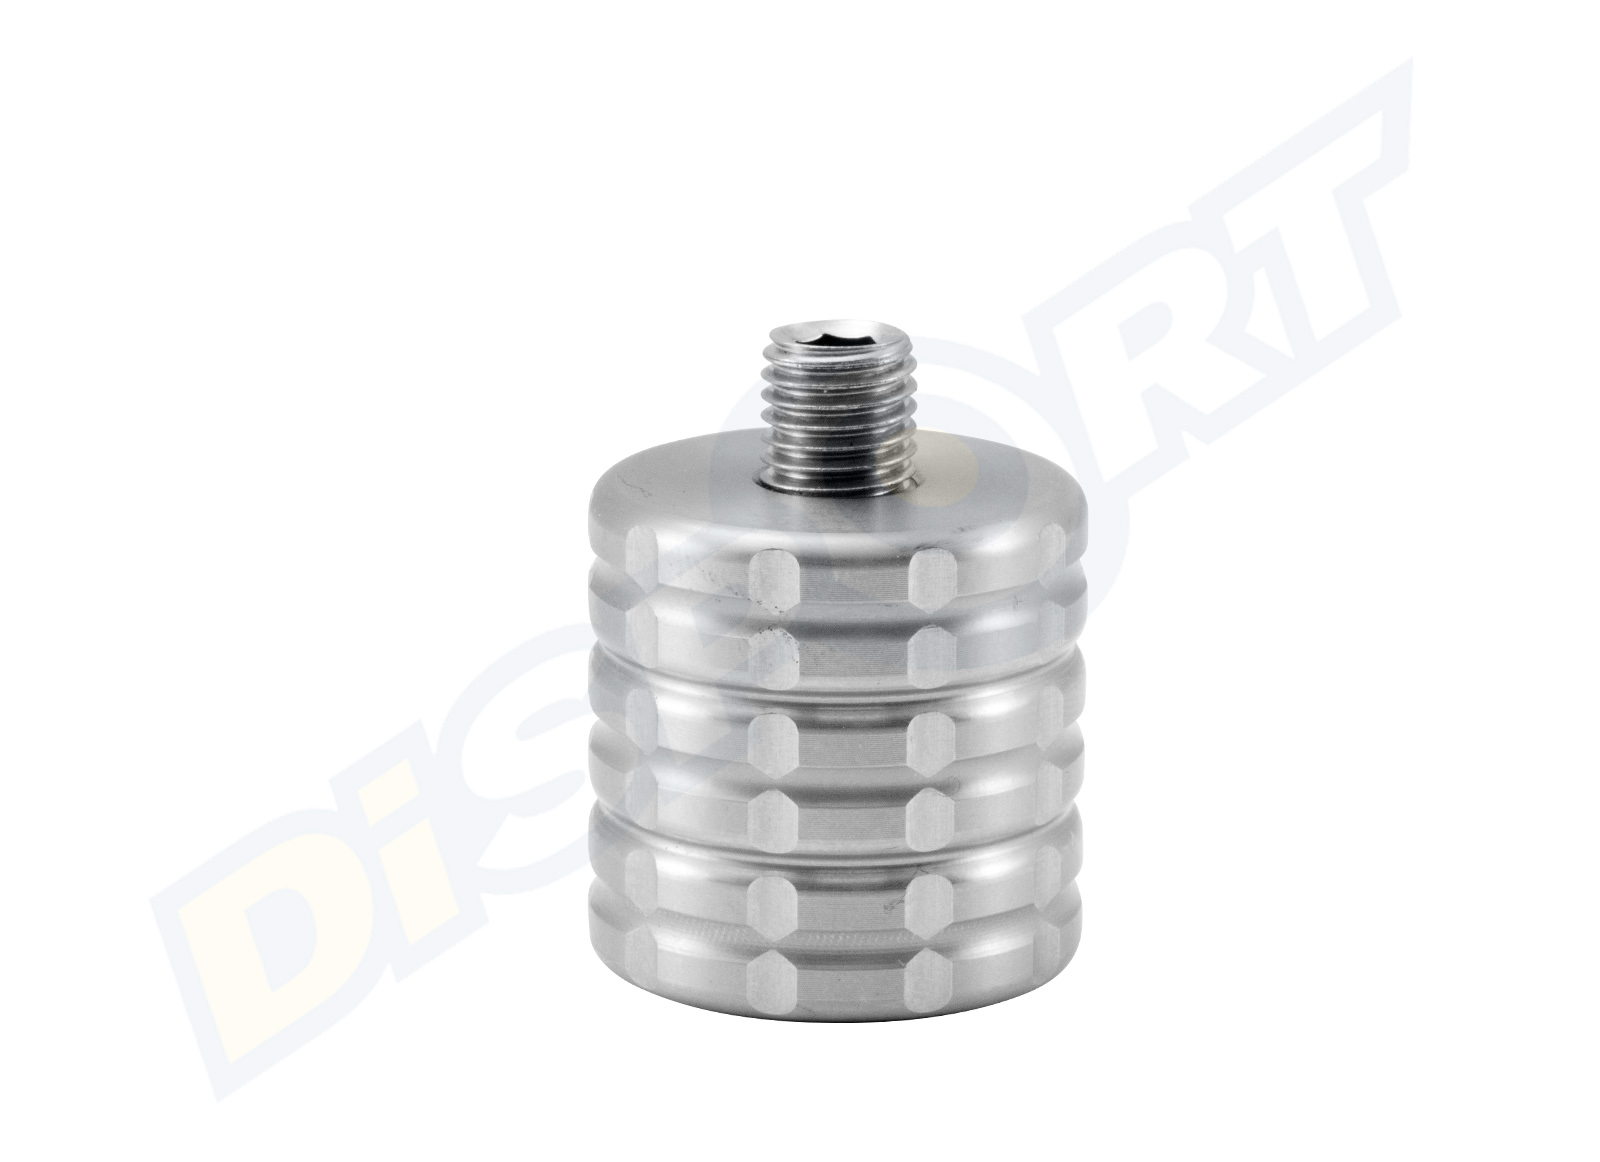 AXCEL PESI PER STABILIZZATORE 3OZ 1.00'' STAINLESS STEEL